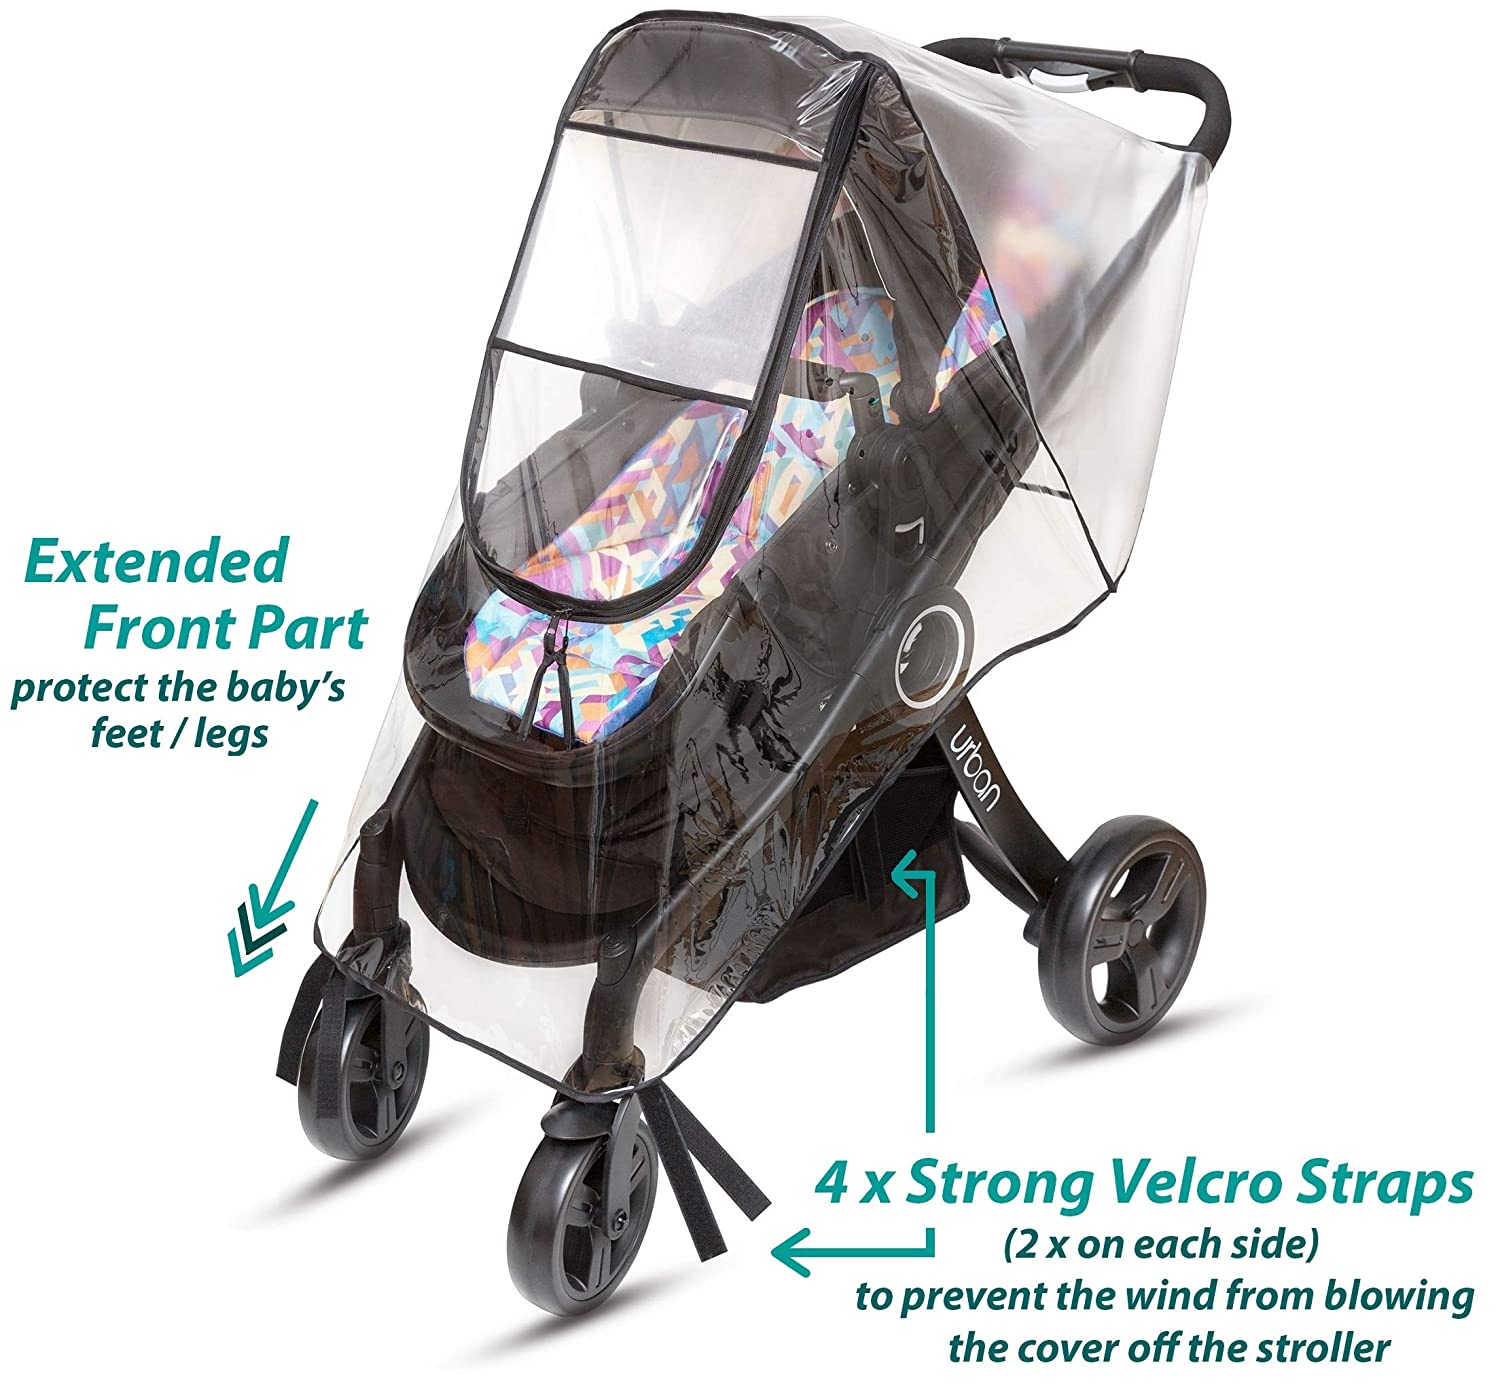 Strollers Accessories Qualified Raincoat For A Stroller Universal Strollers Pushchairs Baby Carriage Waterproof Dust Rain Cover Windshield Stroller Accessories